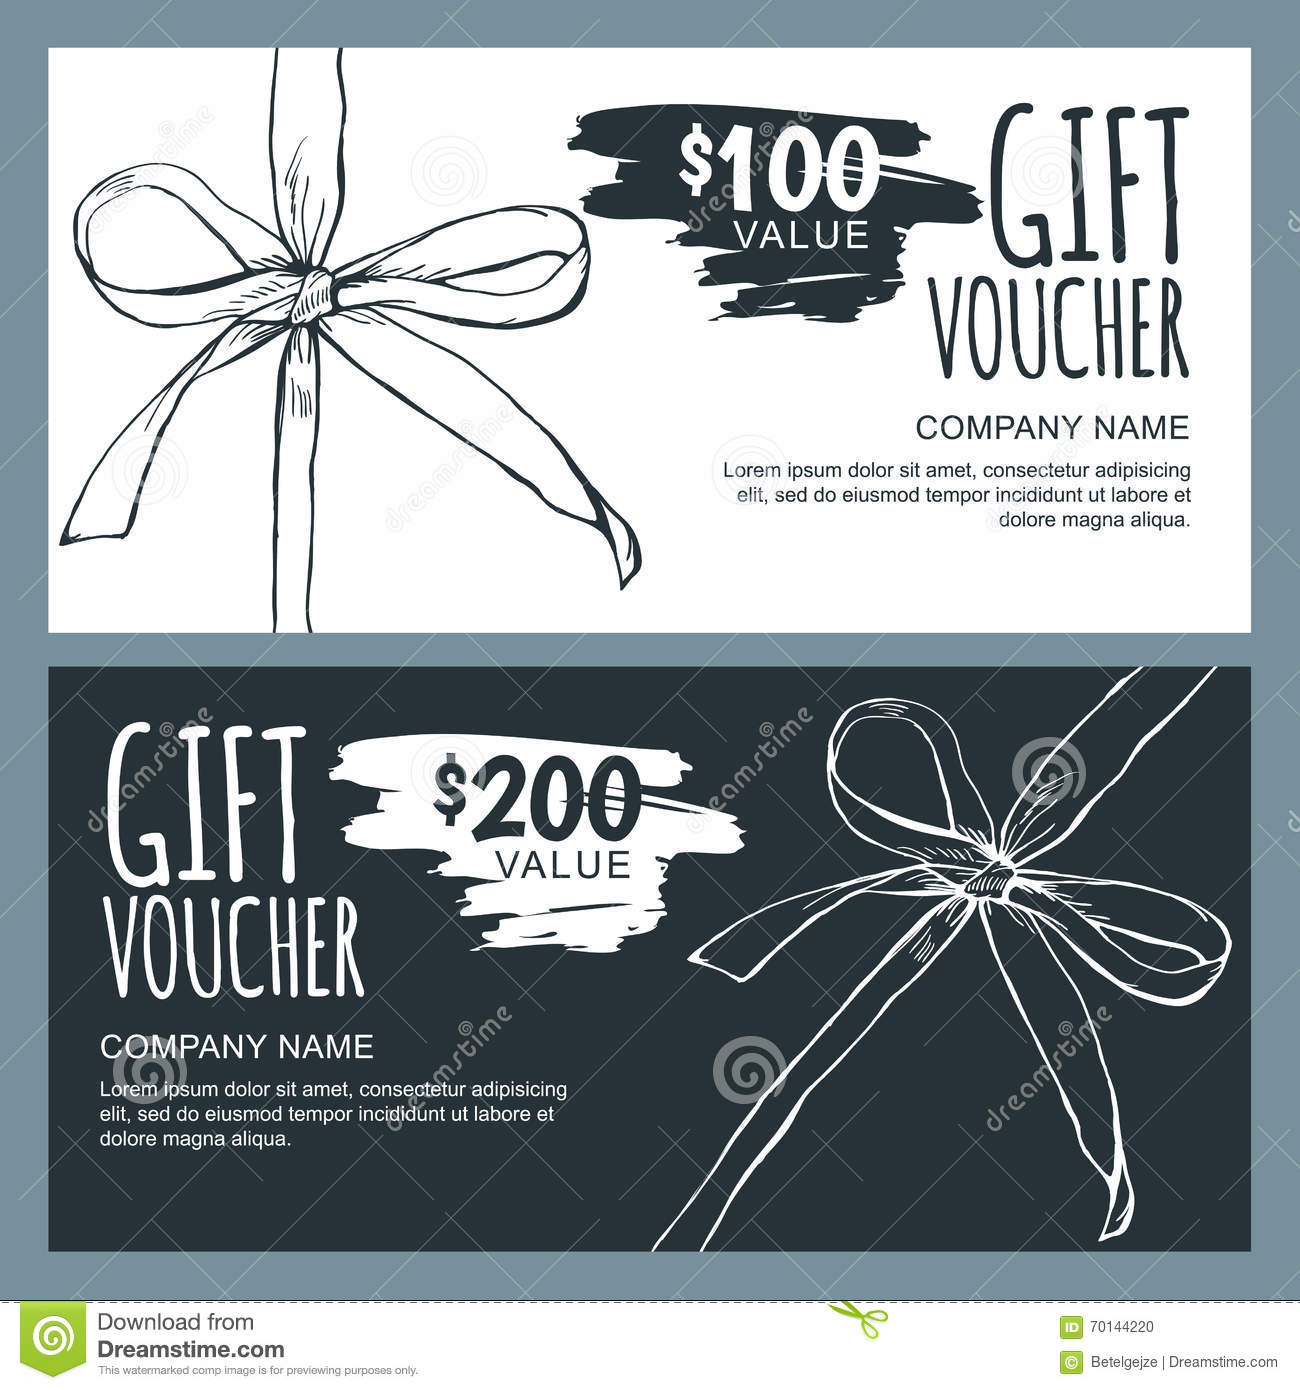 vector gift voucher template with hand drawn outline bow